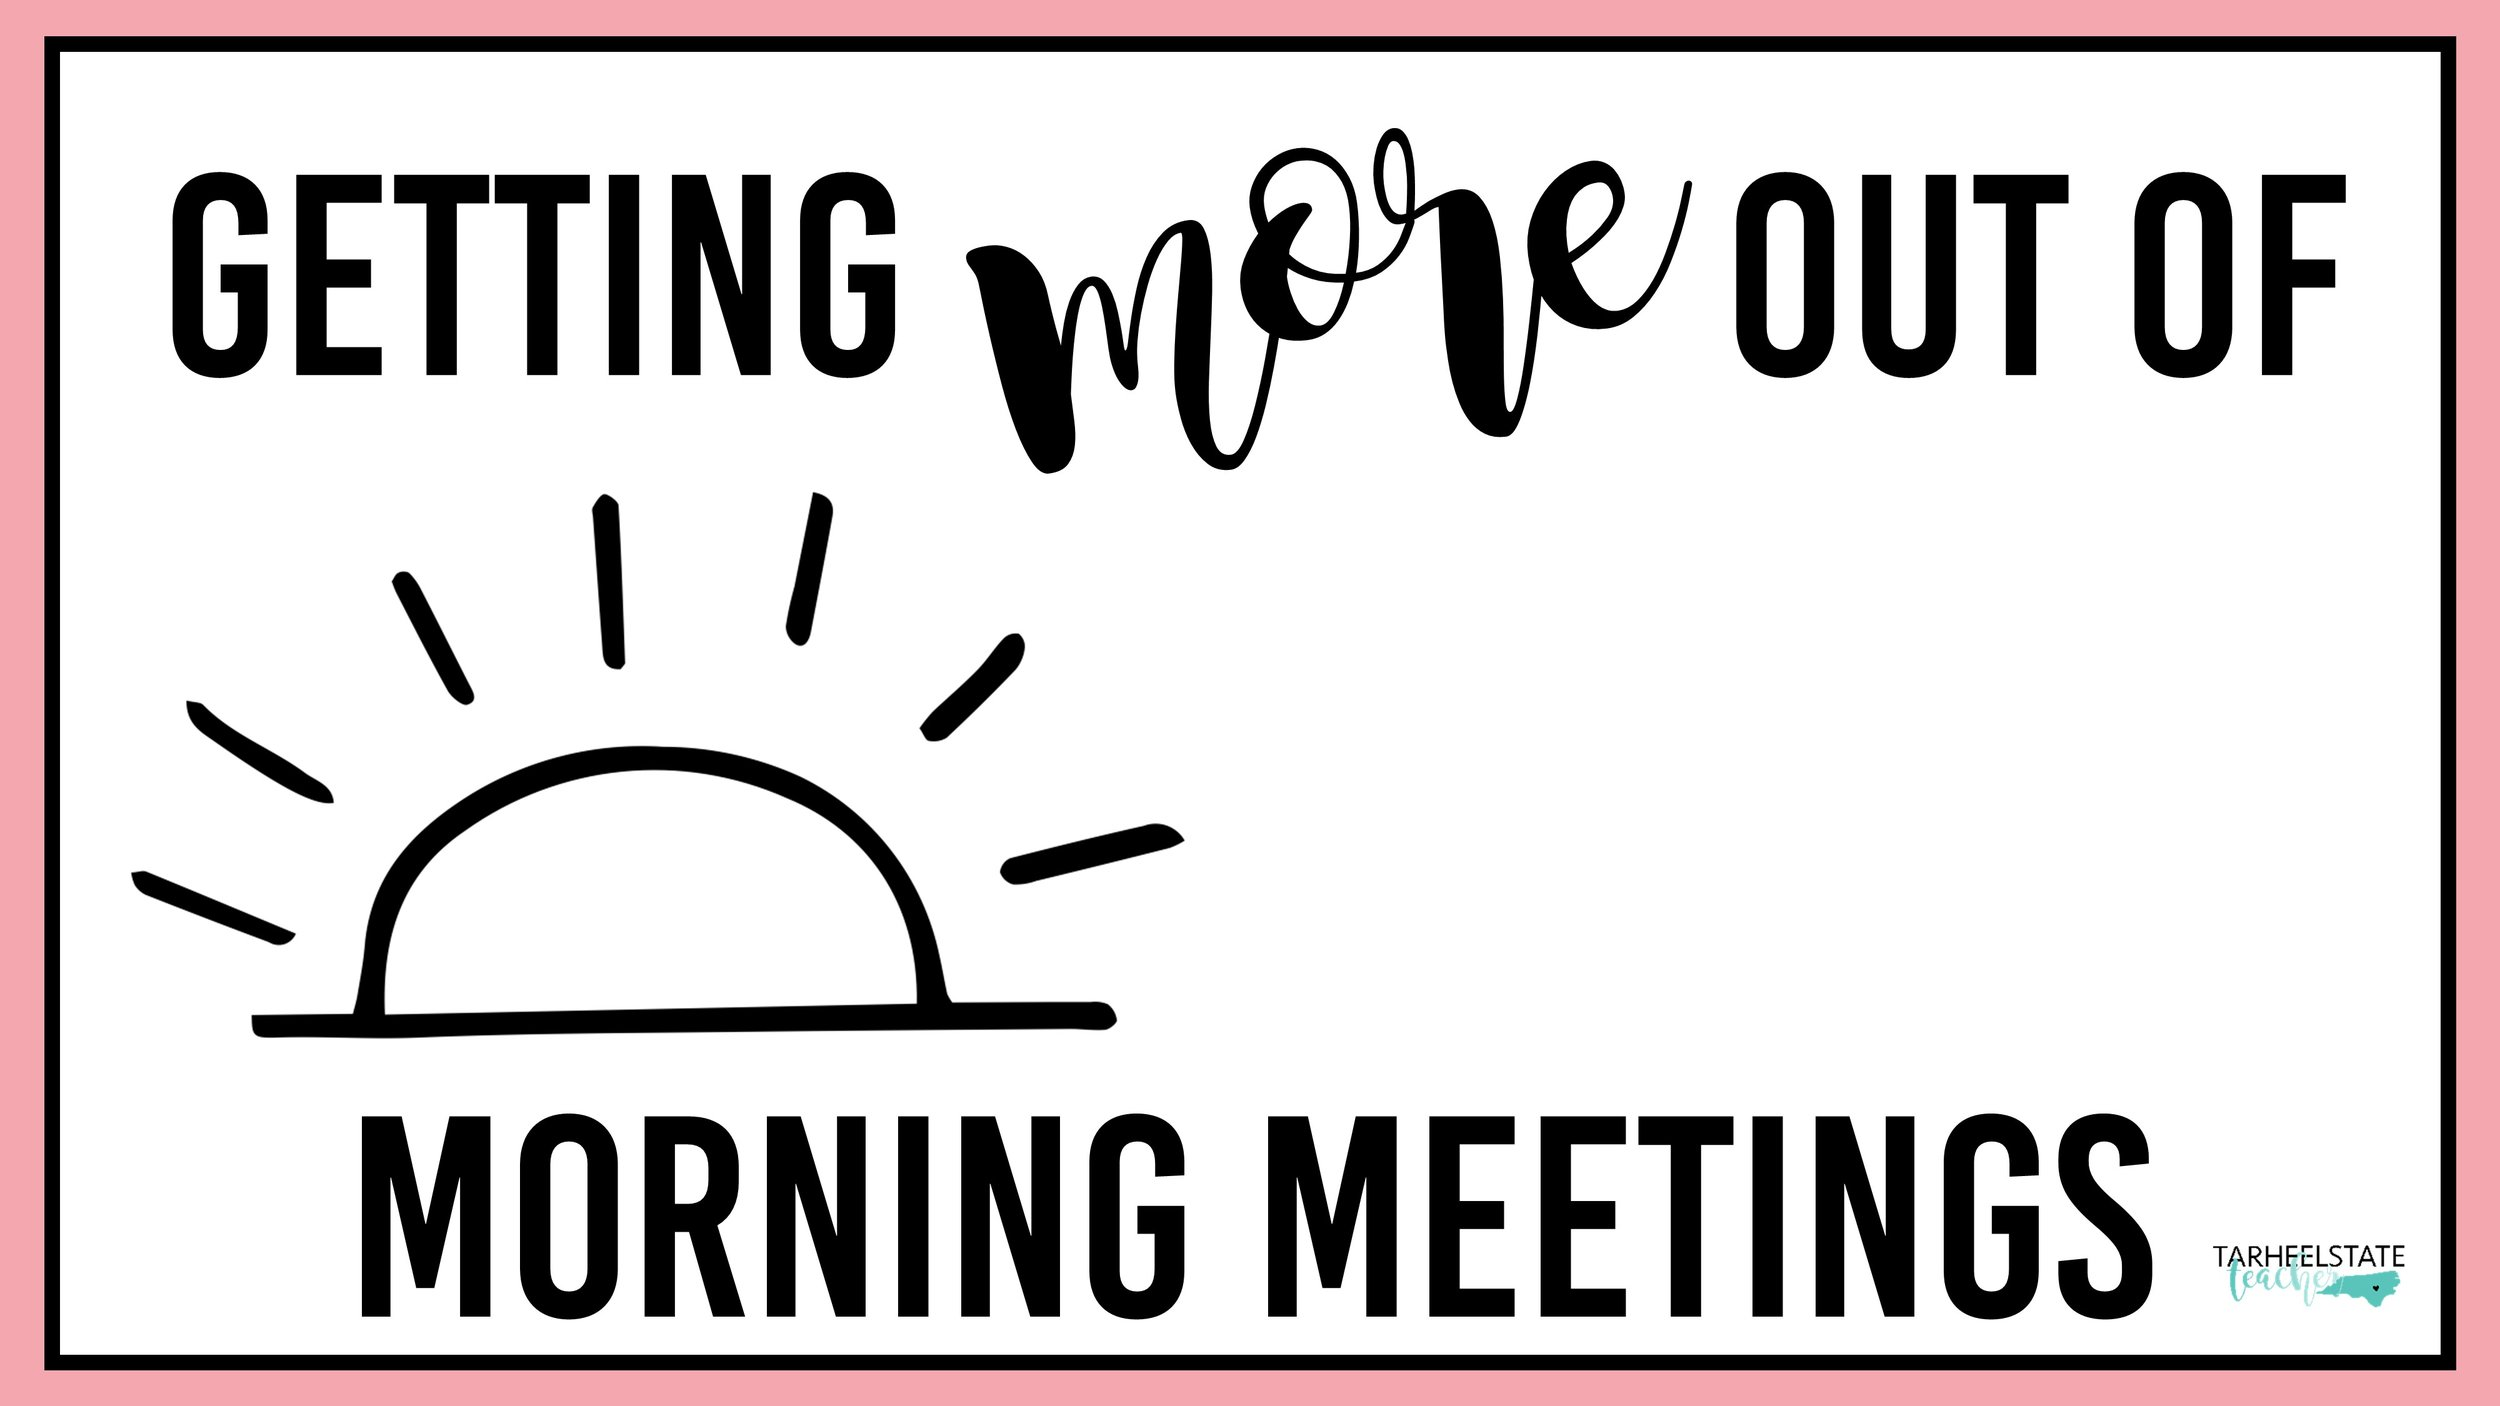 YES!  - You ARE IN! I'm so glad you are joining me on this journey to LEARN MORE and GET MORE out of MORNING MEETINGS!